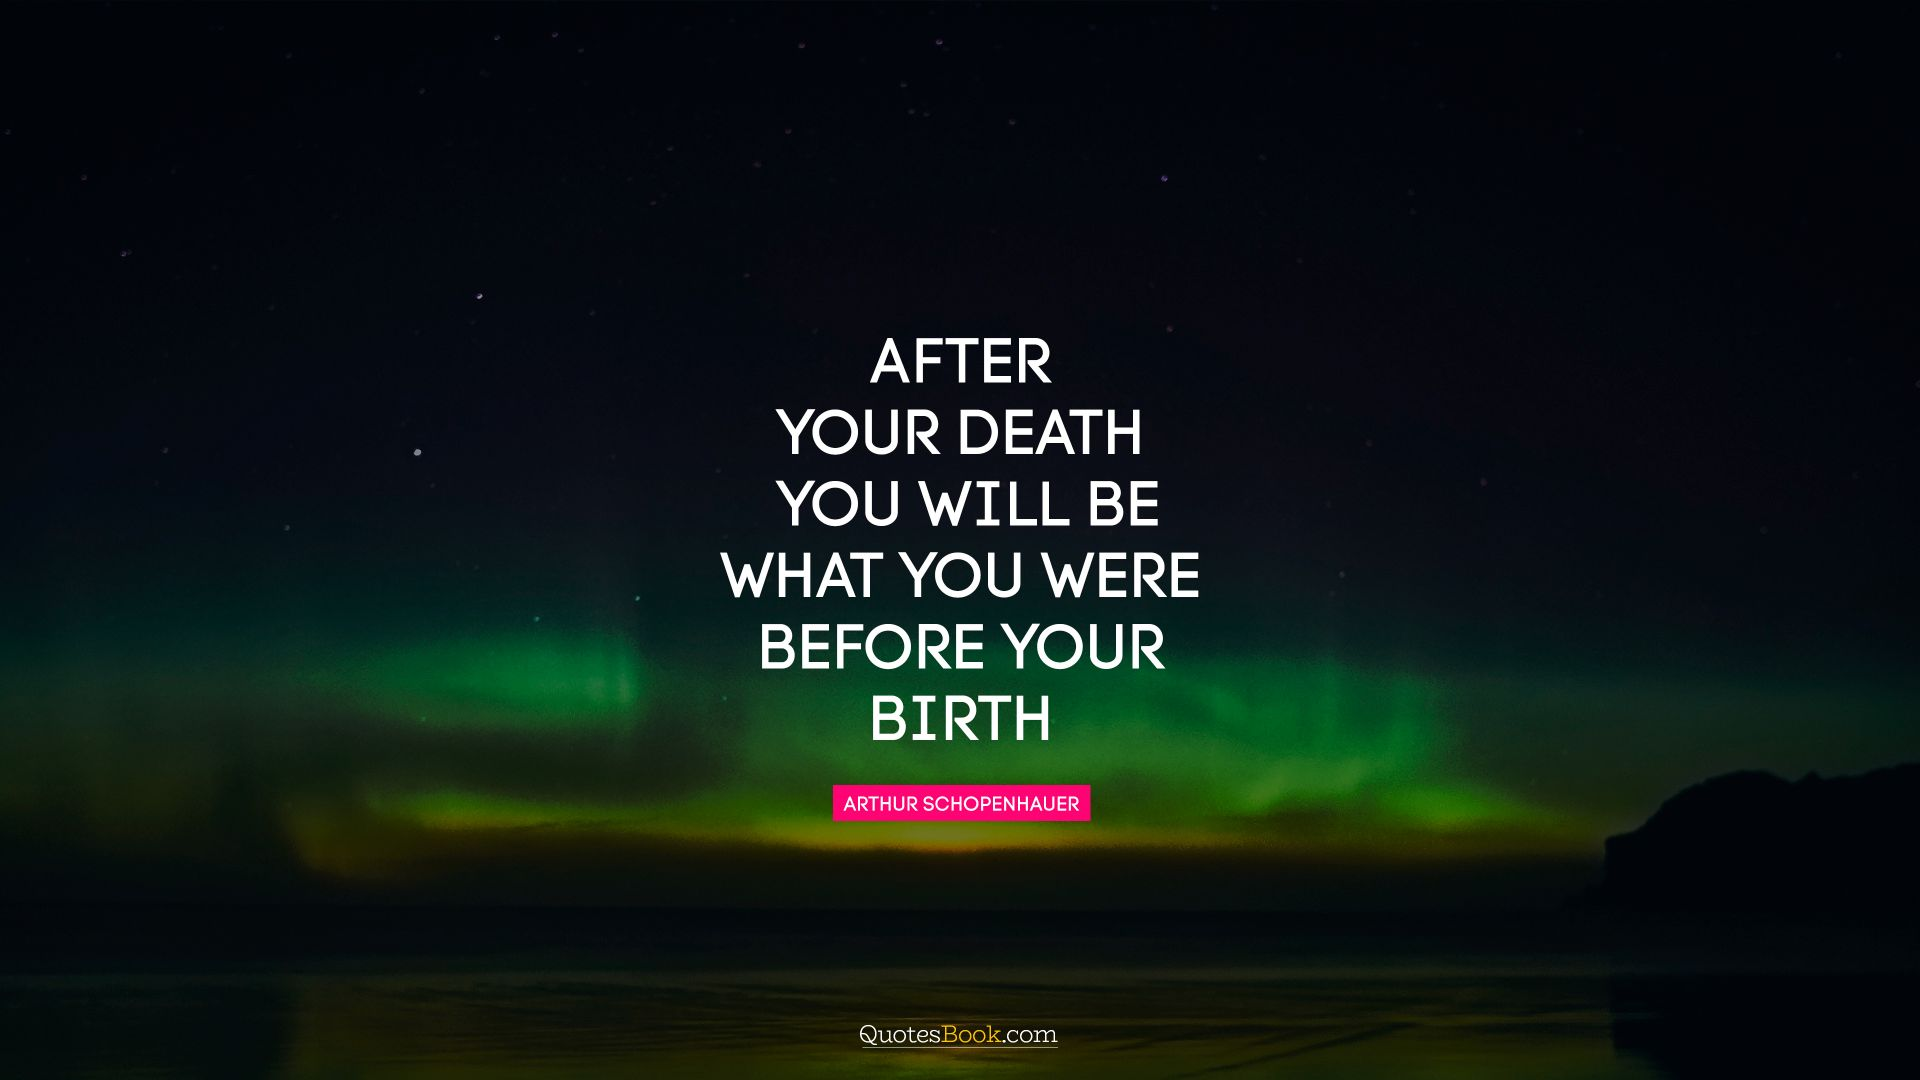 After your death you will be what you were before your birth. - Quote by Arthur Schopenhauer